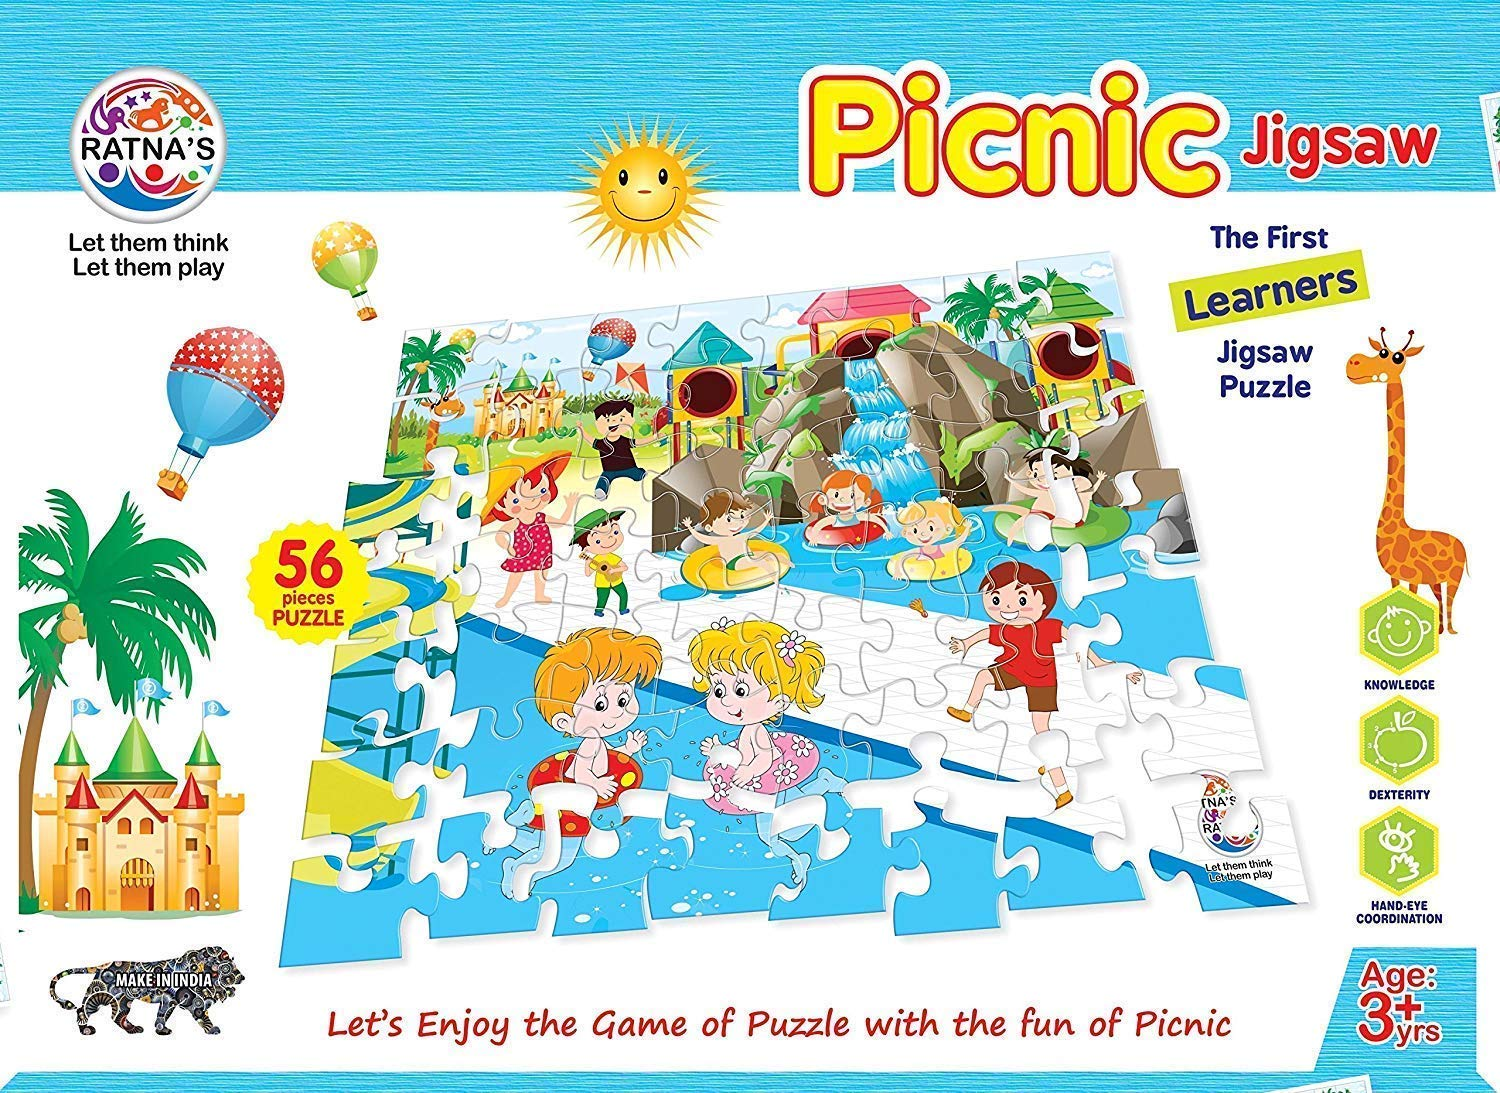 Picnic Jigsaw Puzzle